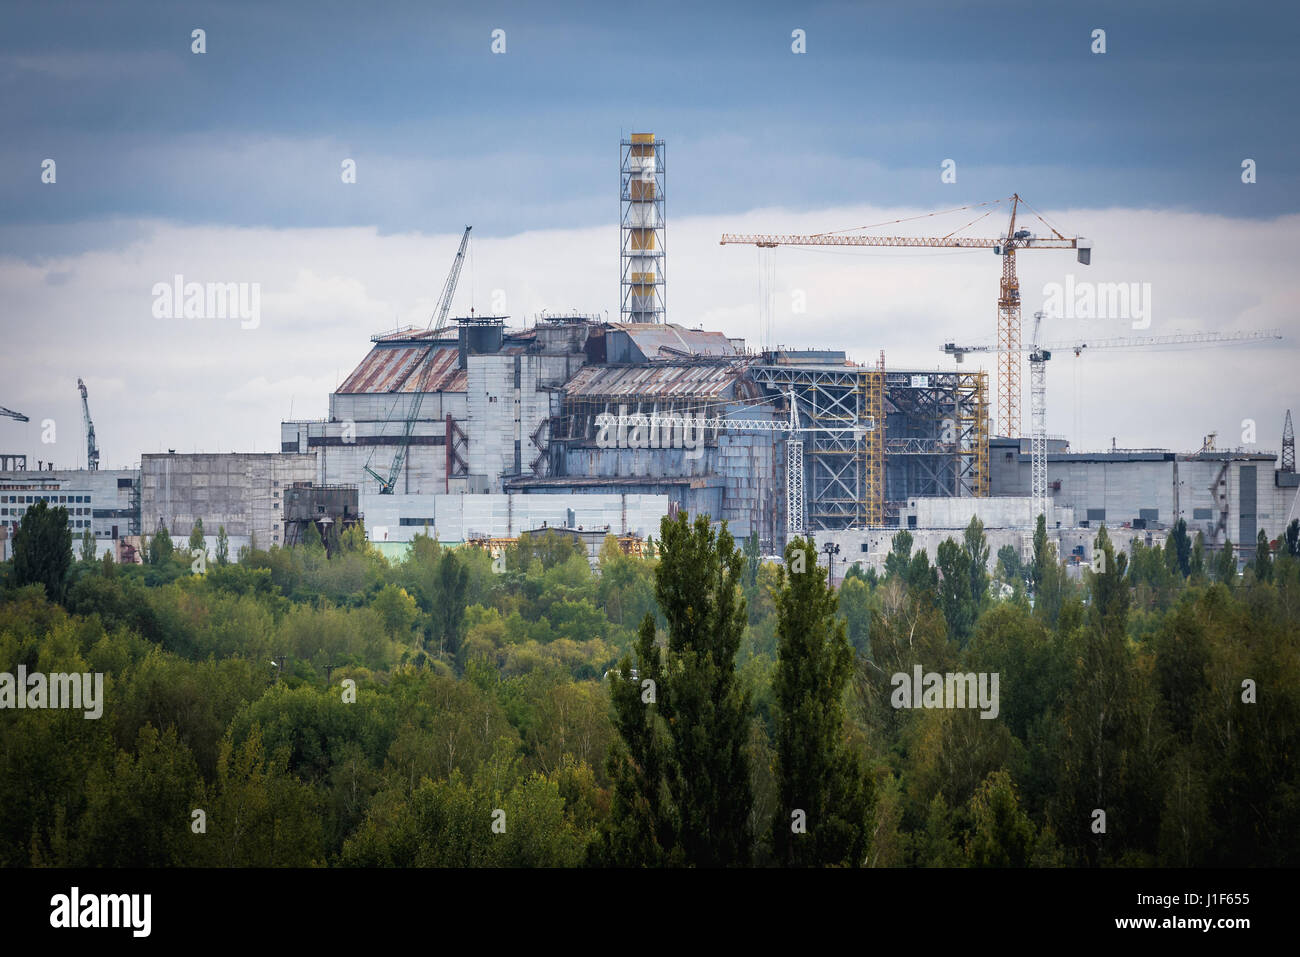 Reactor number 4 of Chernobyl Nuclear Power Plant in Zone of Alienation around nuclear reactor disaster in Ukraine - Stock Image